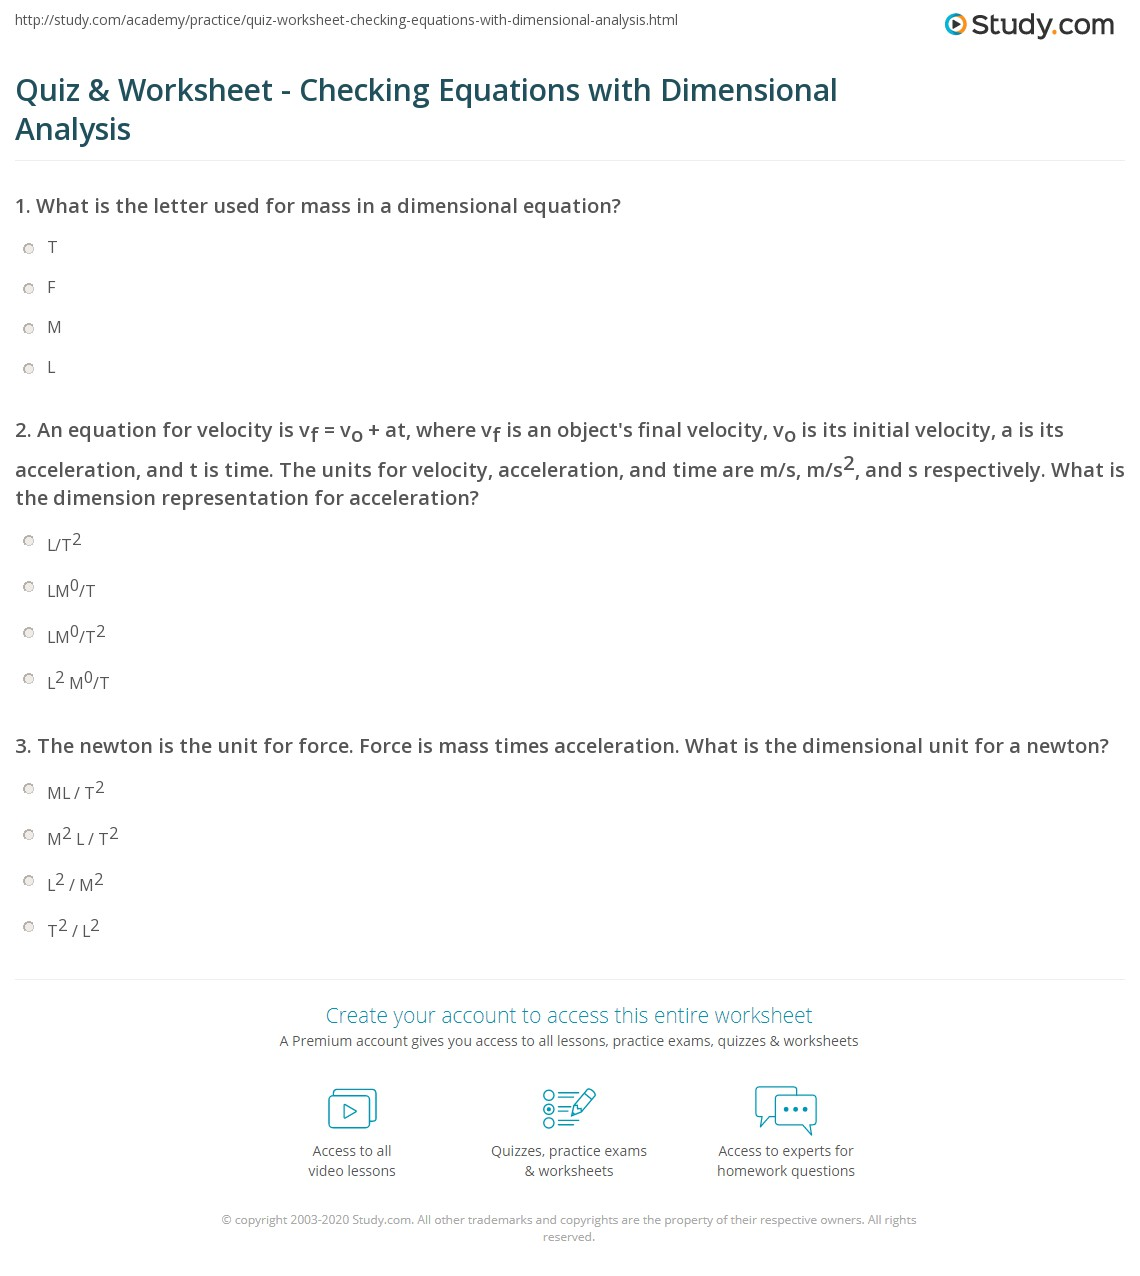 hight resolution of Quiz \u0026 Worksheet - Checking Equations with Dimensional Analysis   Study.com